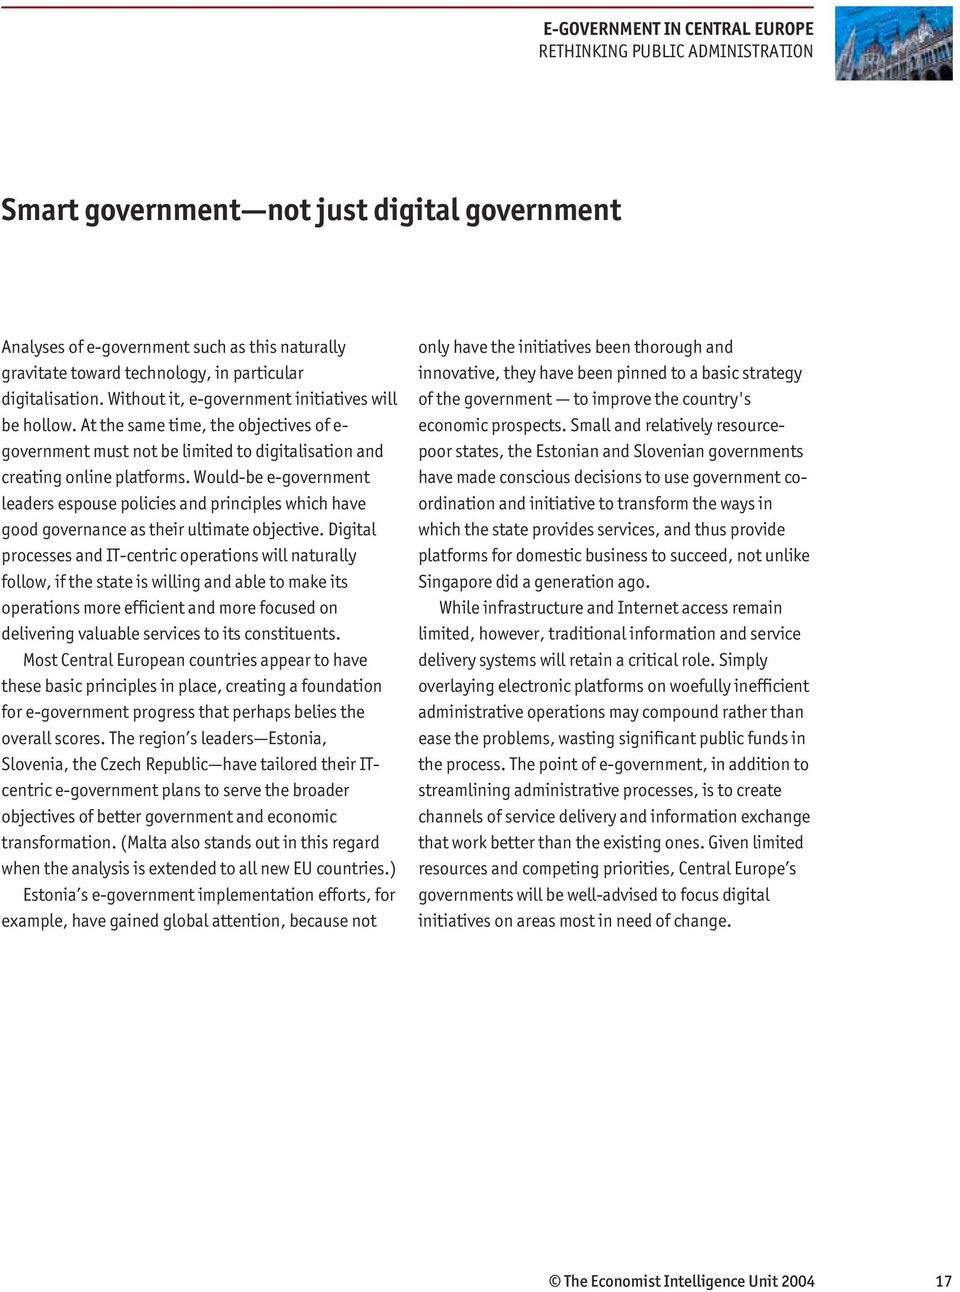 Would-be e-government leaders espouse policies and principles which have good governance as their ultimate objective.